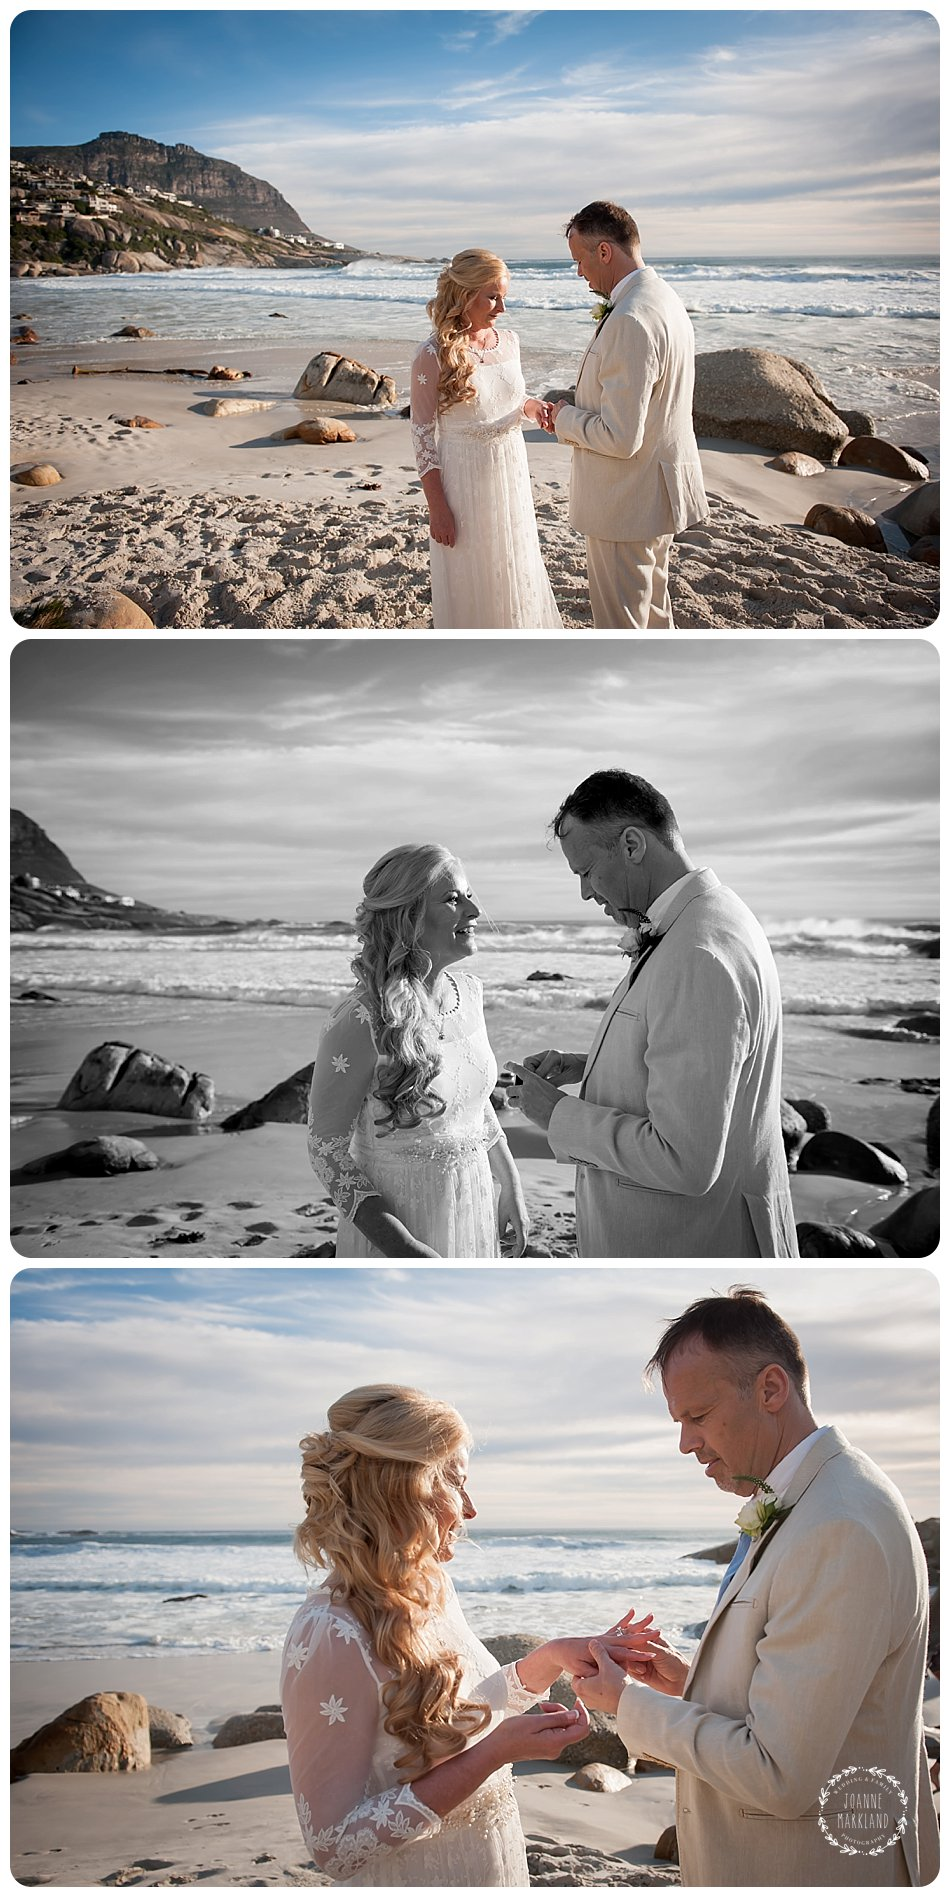 elopement, beach elopement, beach elopement cape town, cape town elopement photographer, wedding photographer cape town, cape town wedding photographer, beach weddings